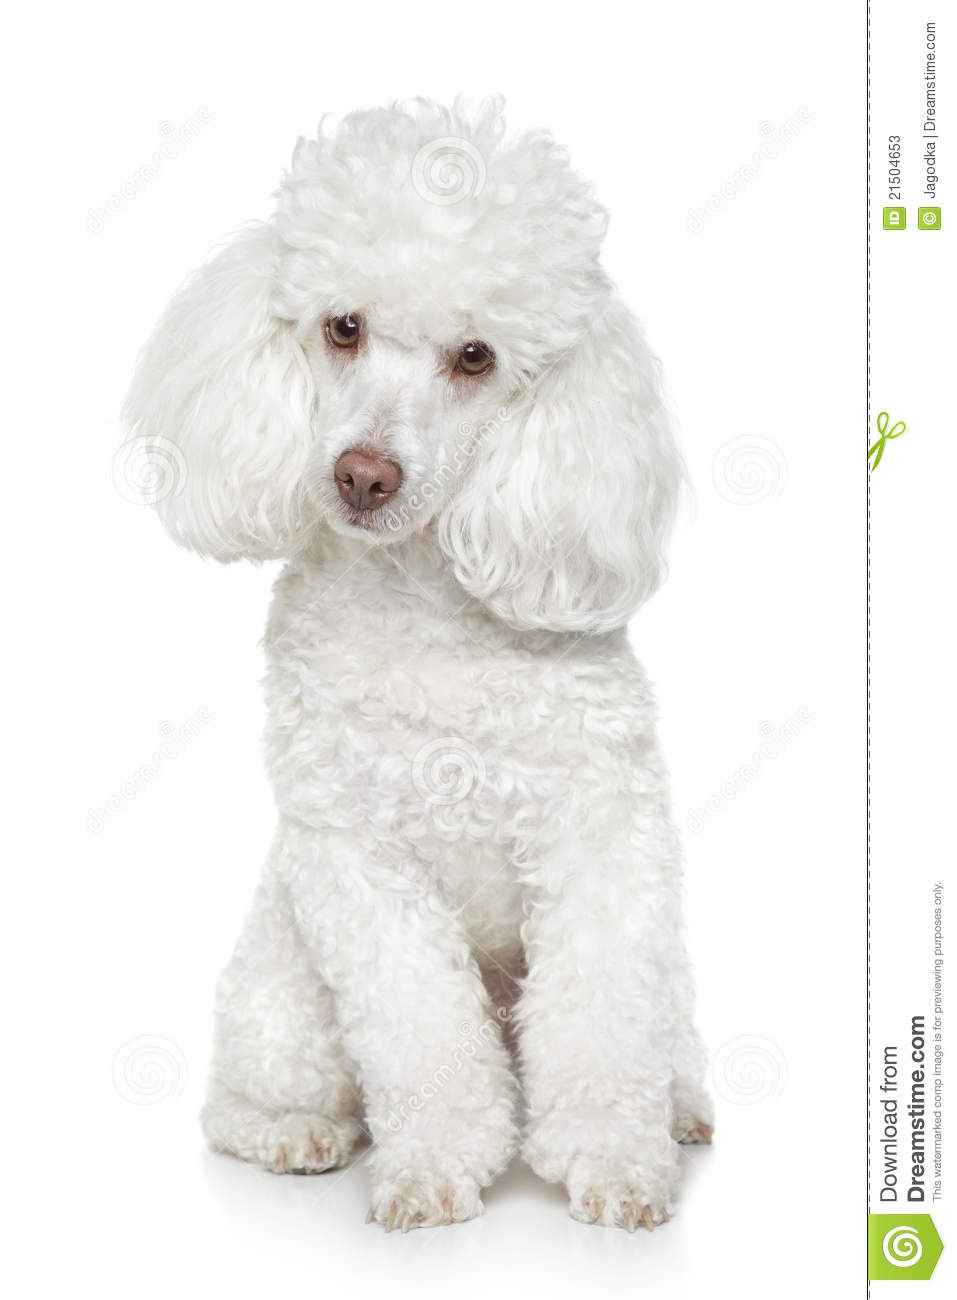 Z Poodles White Toy Poodle On Wh...